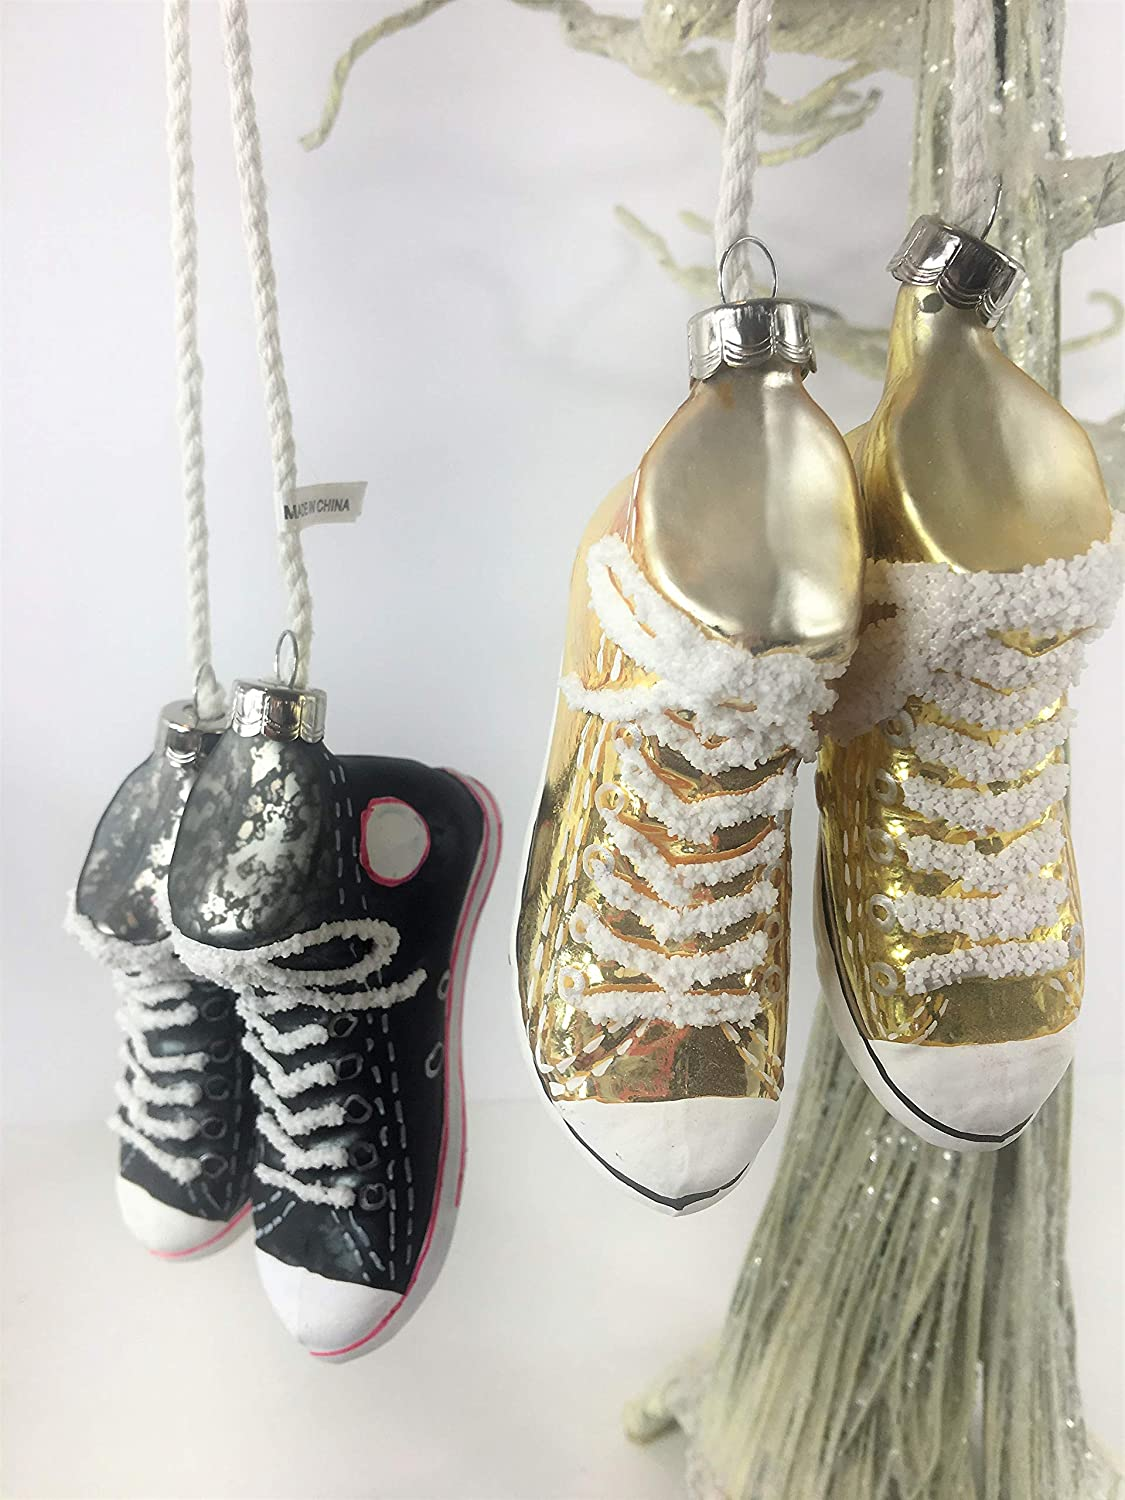 Foster Christmas High Top Chuck Sneaker Pair Black or Gold Shoes Hanging Ornaments Glass Glitter Stocking Stuffer Black